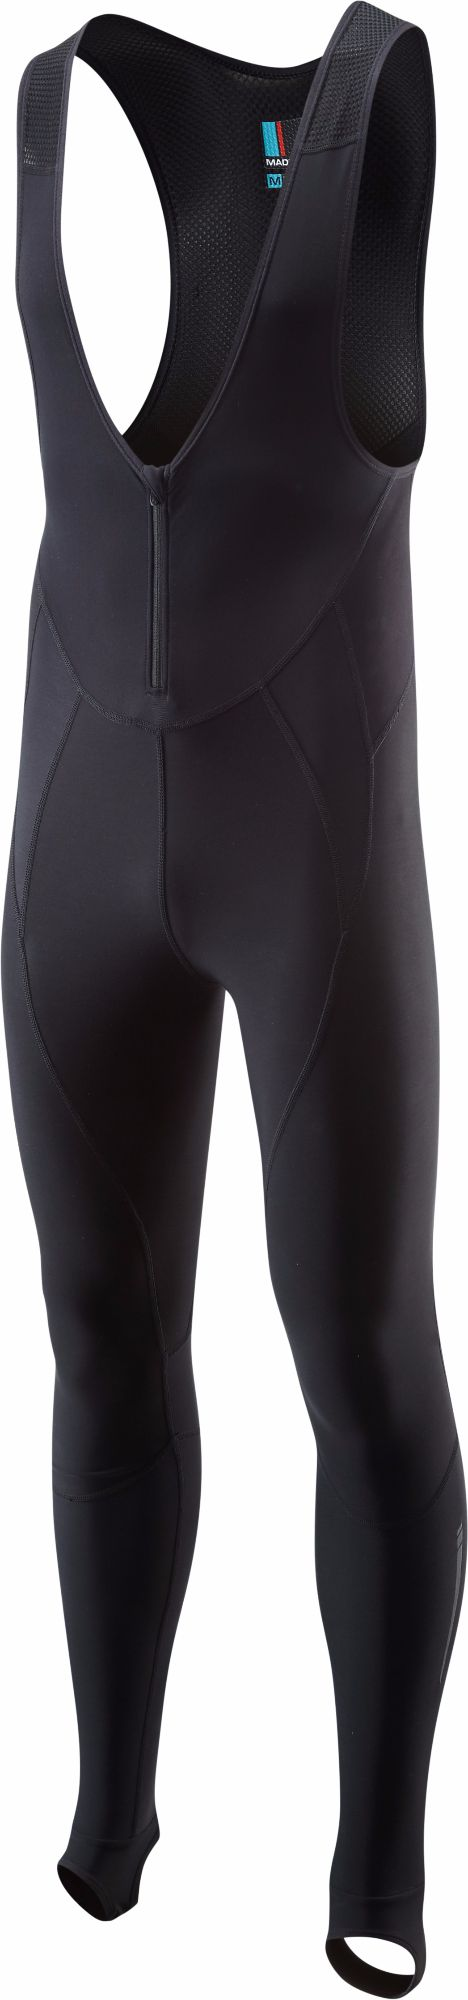 Madison Road Race Apex Mens Bib Tights with out Pad